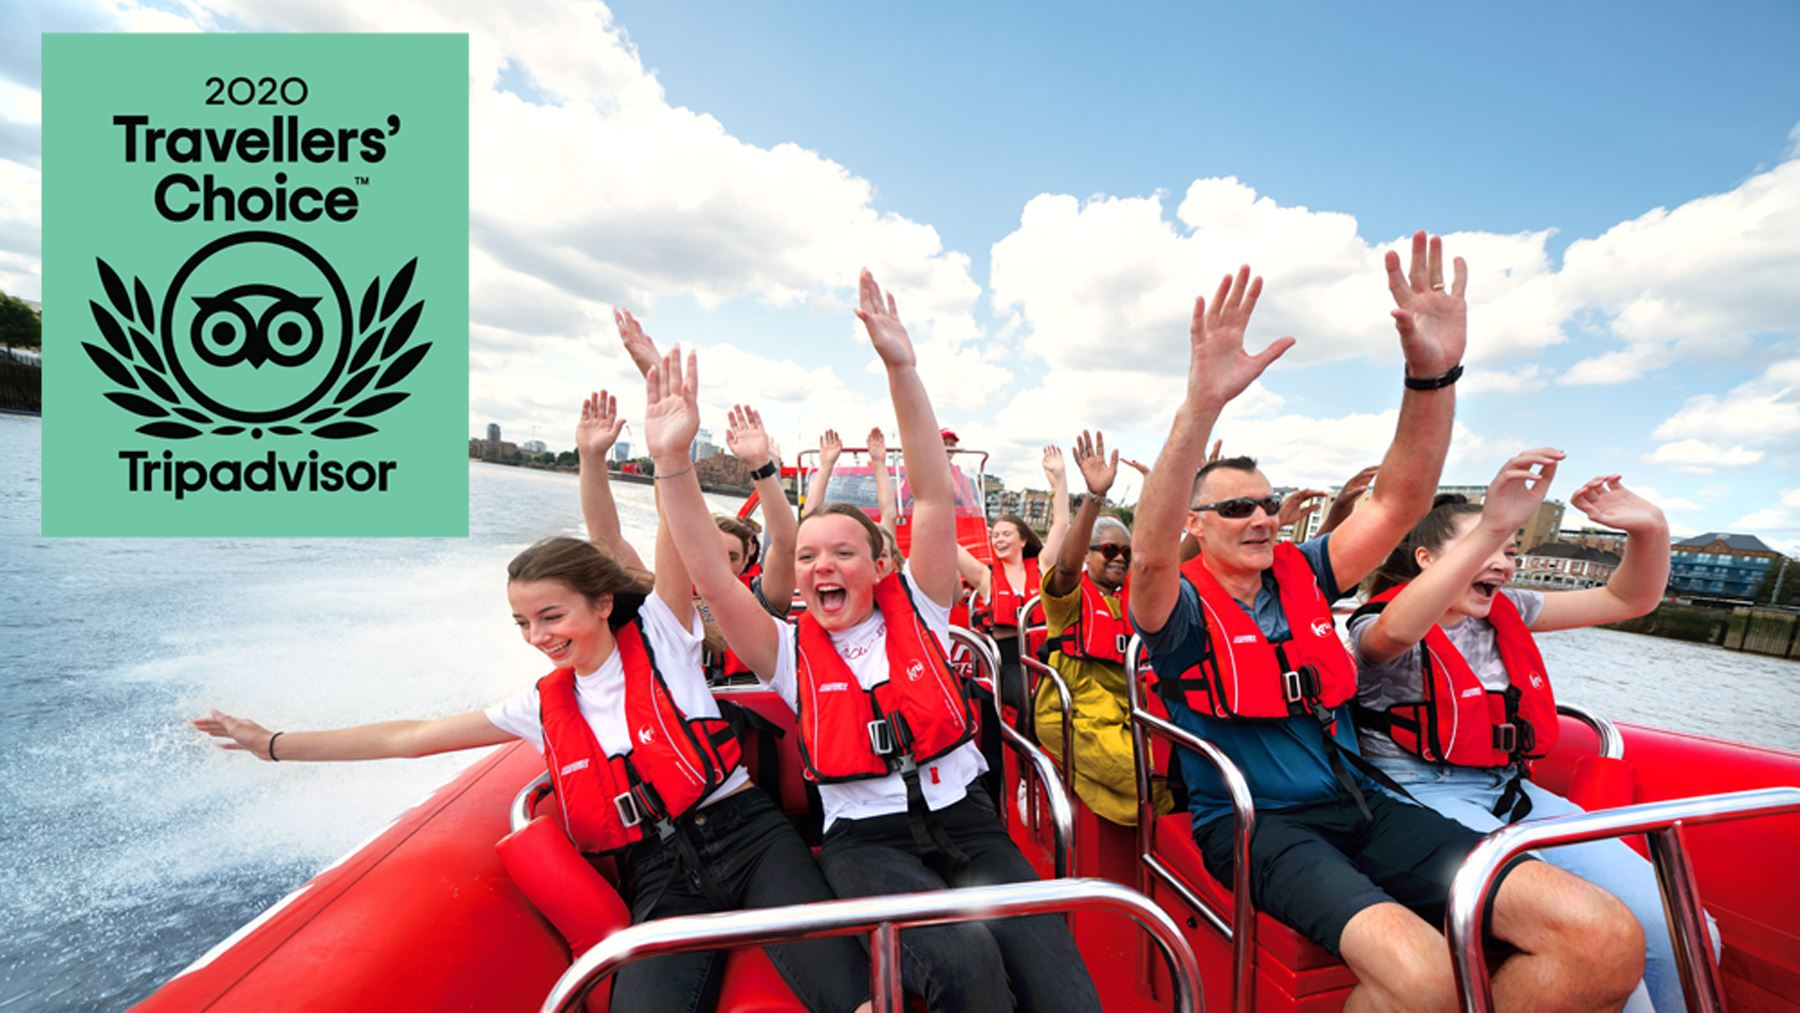 Thames Rockets Named in Top 10% of Attractions Worldwide!